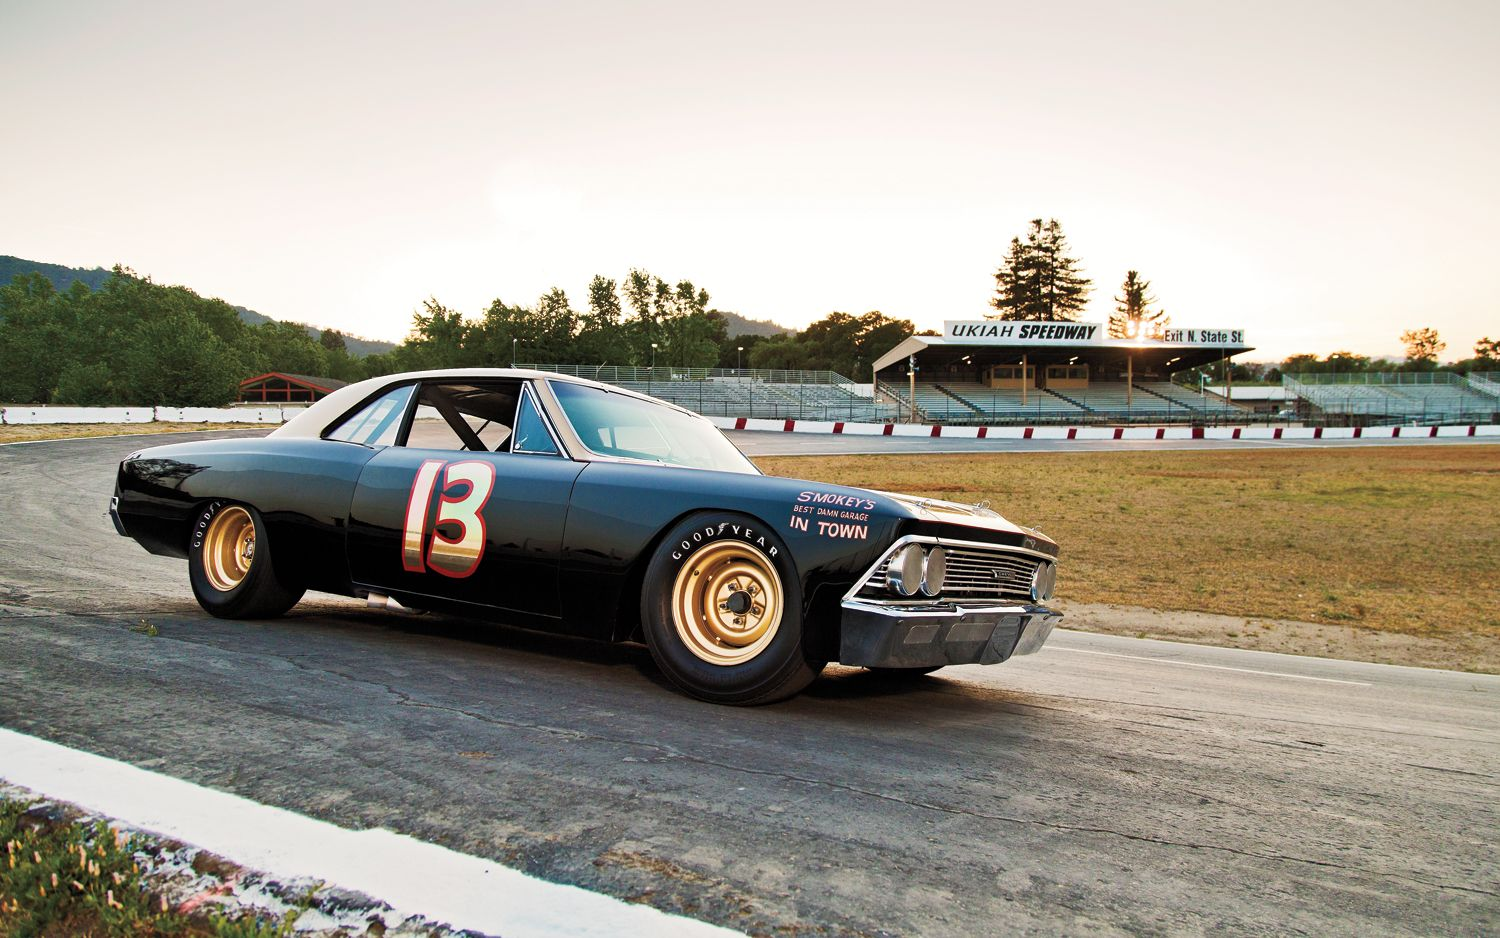 Chevrolet Chevelle Grand National Race Car Smokey S